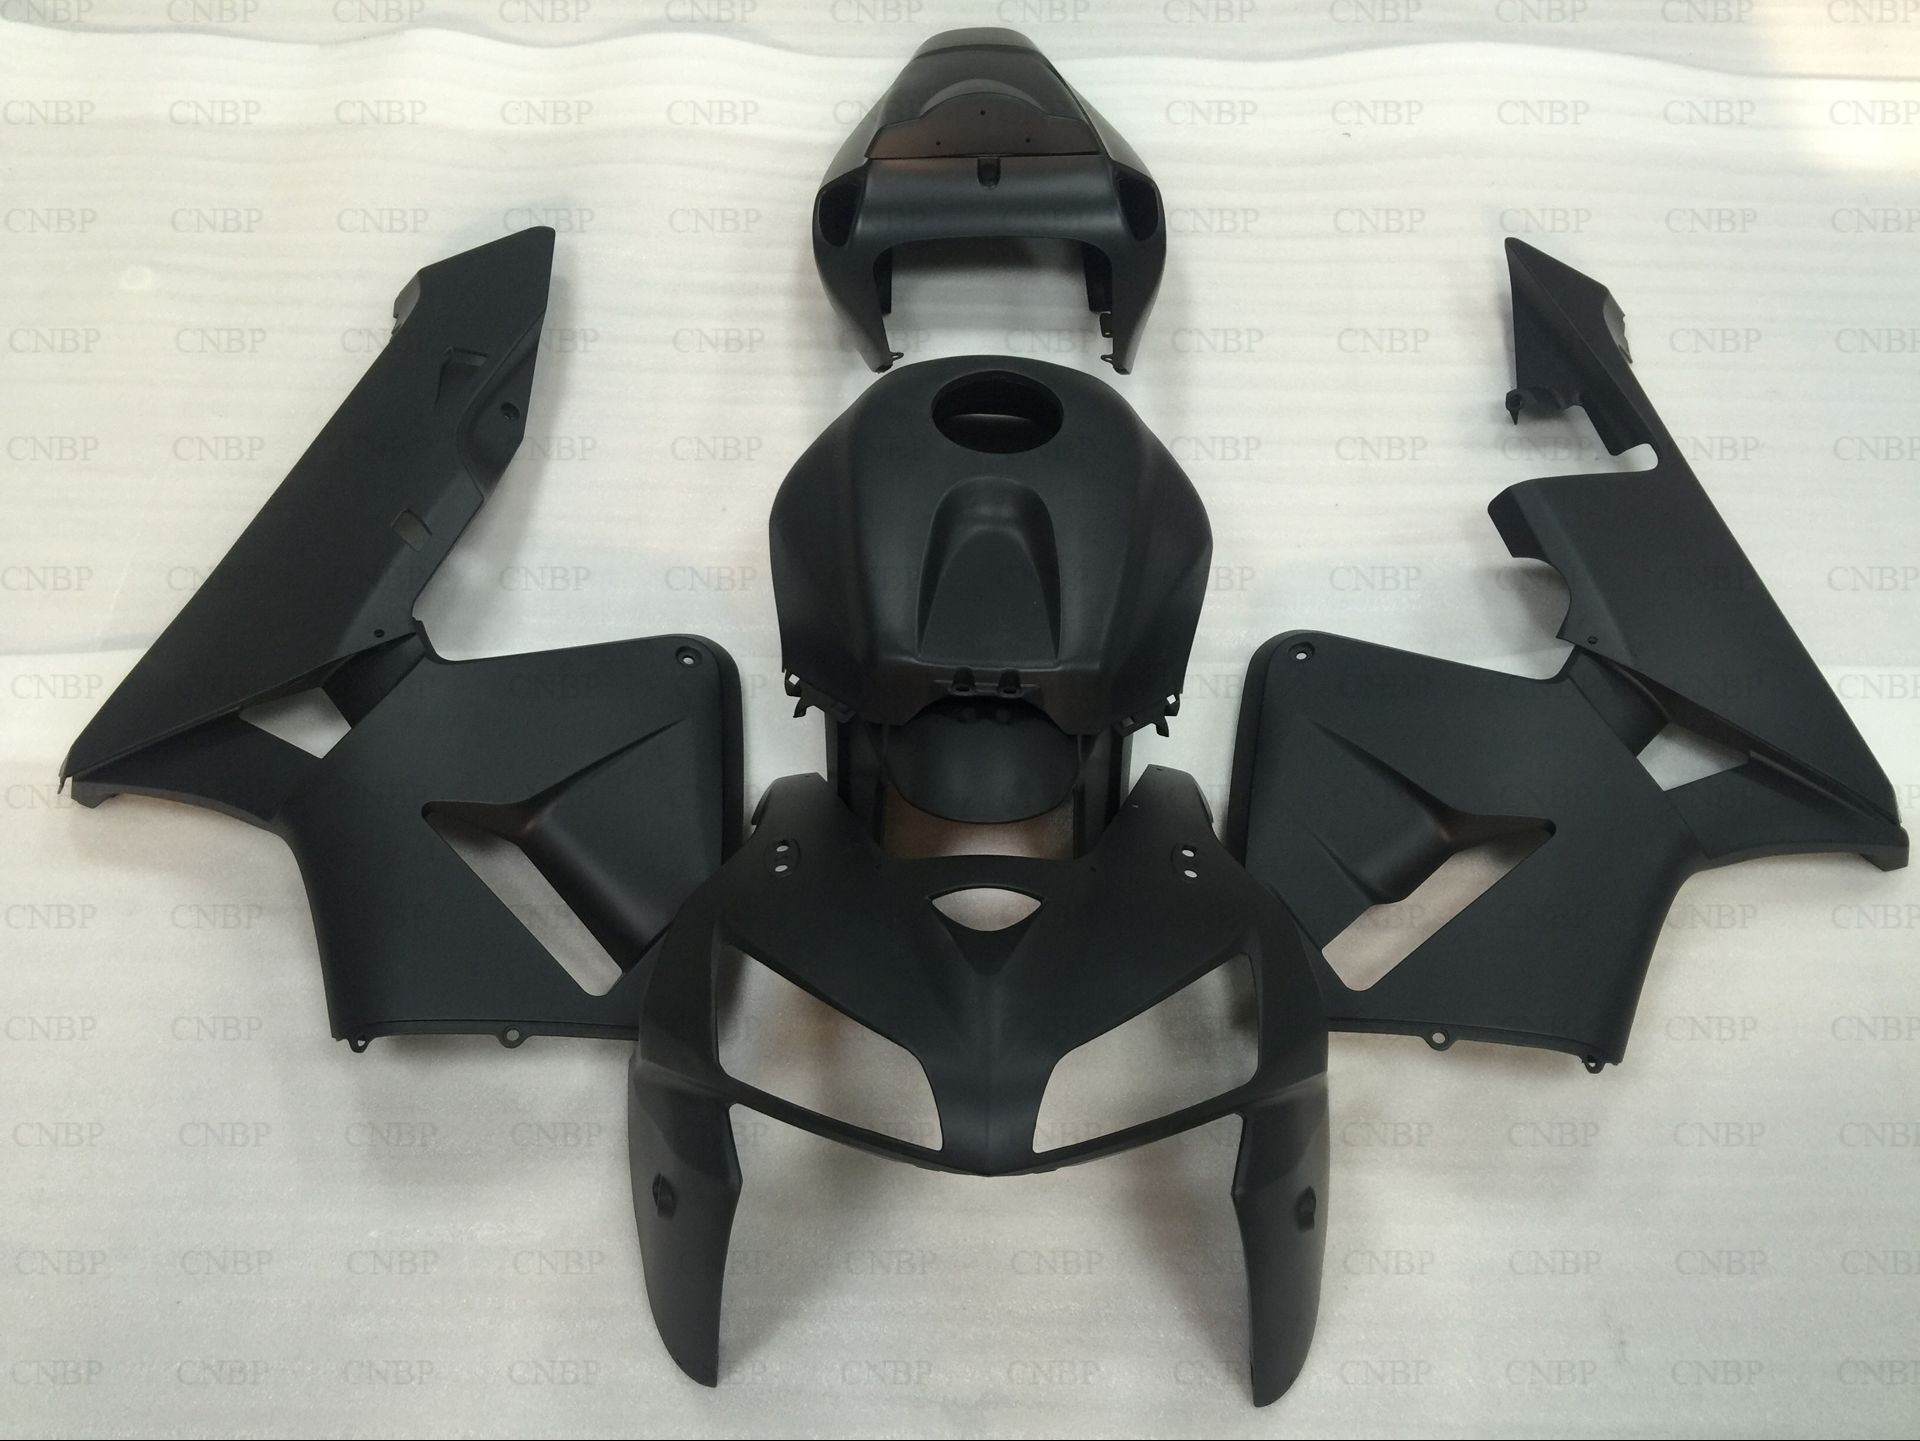 Fairings CBR 600 RR 06 Plastic Fairings for Honda CBR 600RR 2005 - 2006 Black Fairing Kits for Honda CBR600RR 05 full fairings for honda cbr cbr600rr f5 year 13 14 2013 2014 abs plastic motorcycle fairing kit bodywork cowling asia pata